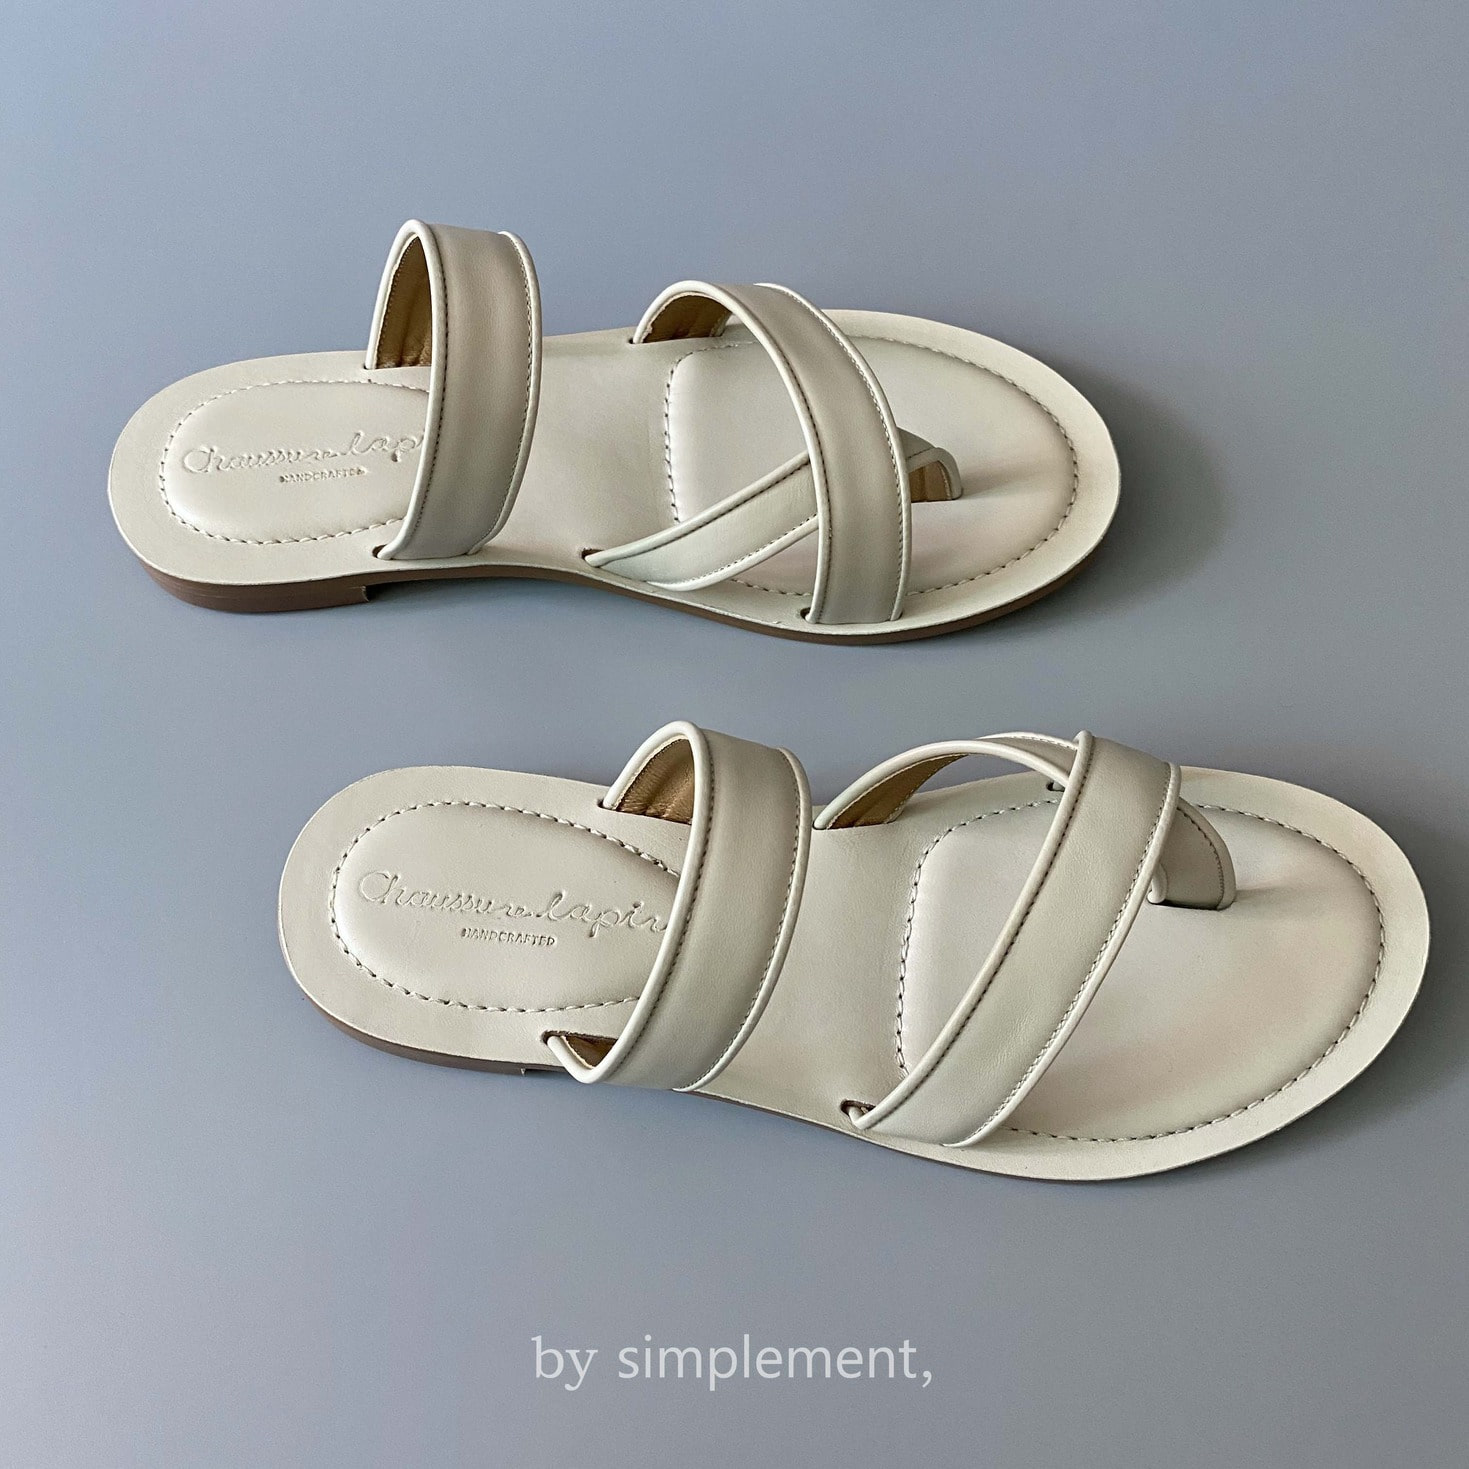 Utile Sandal by simplement, in Ivory